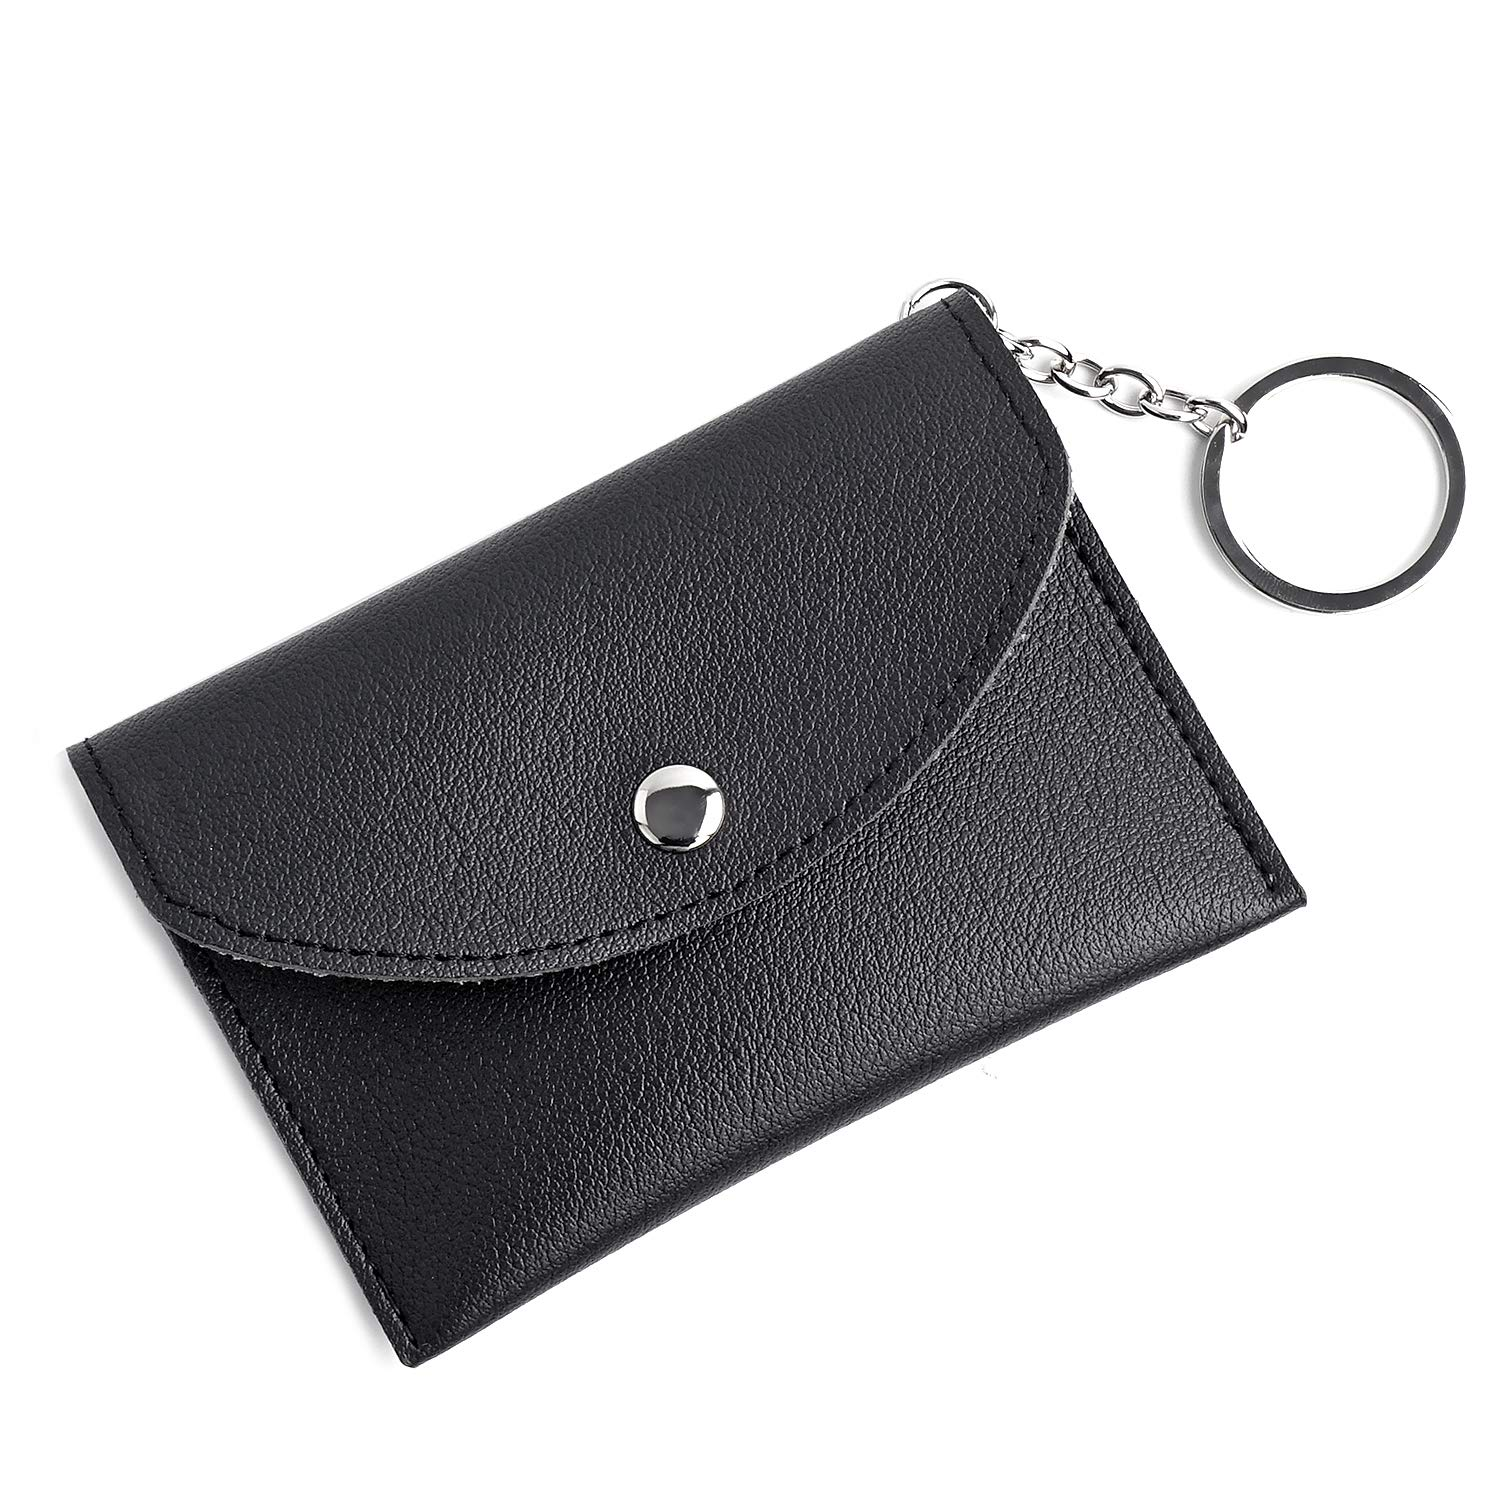 66b1db1570 Small Coin Purse Keychain Wallet Change Purse Credit Card Holder with Key  Ring for Women Girls